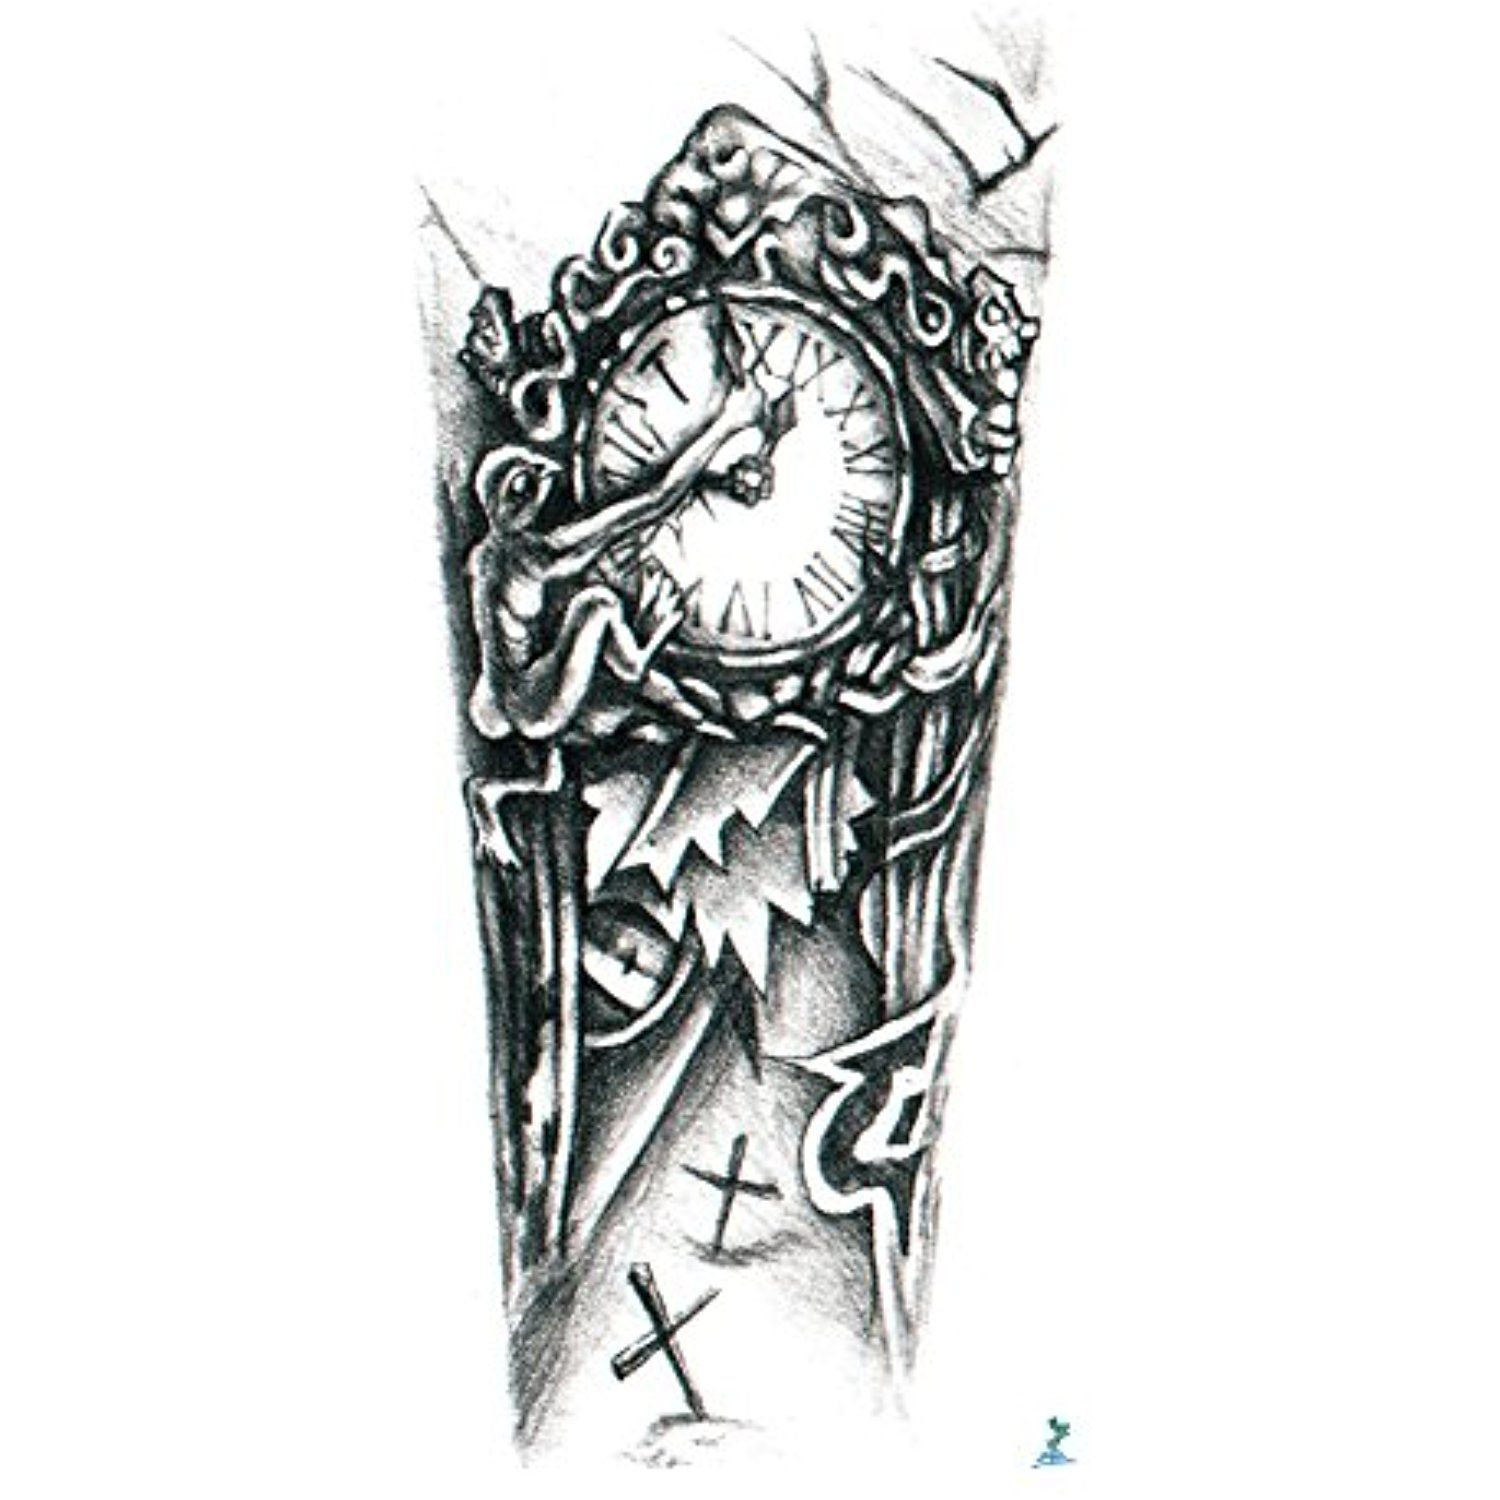 Yeeech Temporary Tattoo Sticker Paper 3d Machine Clock Cross For Arm Want To Know More Click On The Image This Mechanic Tattoo Tattoo Stickers 3d Tattoo